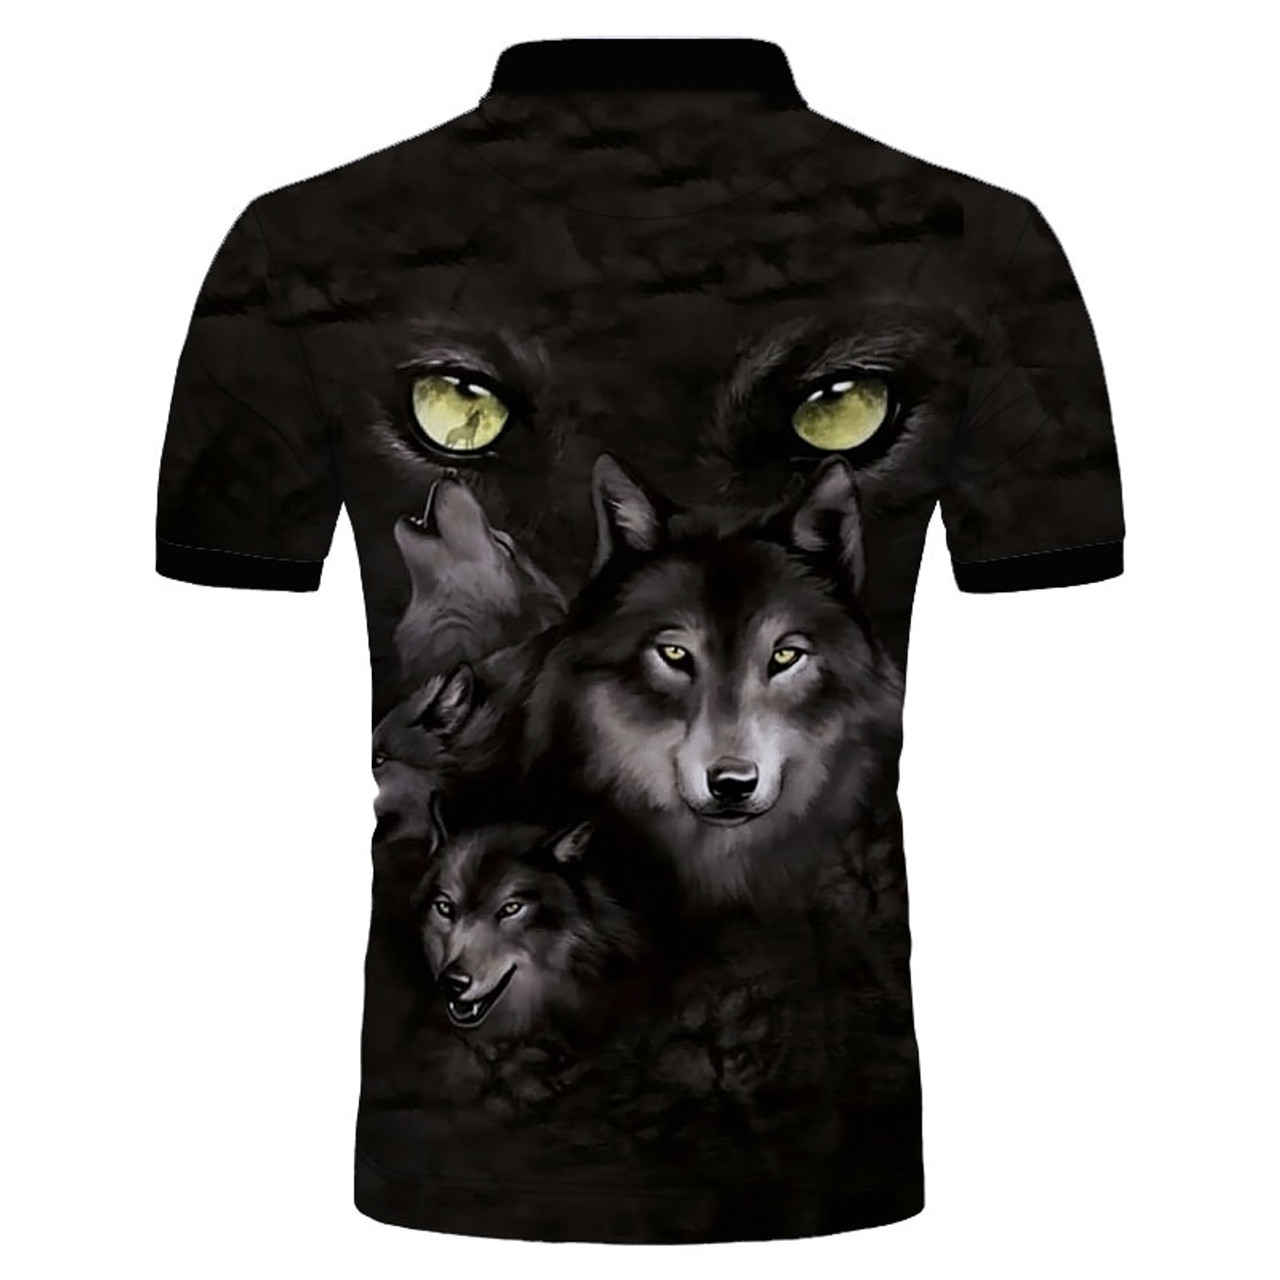 **(CUSTOM-3D-WILD-EYED-WOLVES-HOWLING-IN THE NIGHT/MENS-POLO-SPORT-SHIRTS,NICE-3D-CUSTOM-DETAILED-GRAPHIC-PRINTED/DOUBLE-SIDED-PRINTED-DESIGN-PREMIUM-PULLOVER-TRENDY-POLO-SHIRTS)**